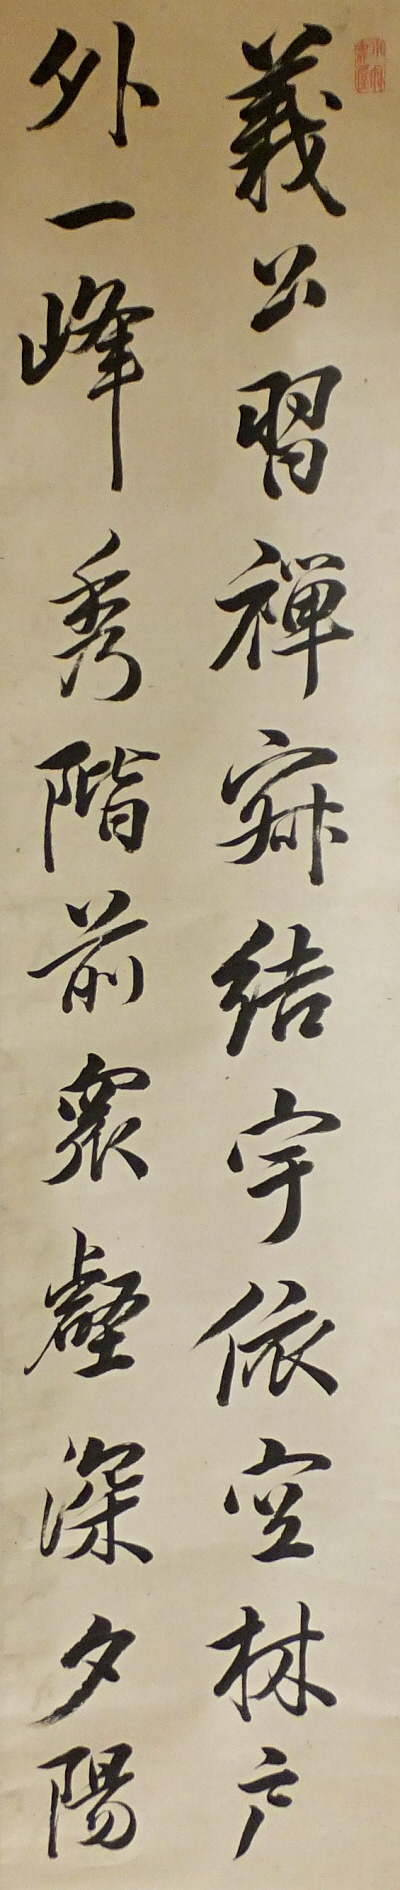 Kanshi Poem by Confucianist, Chirographer